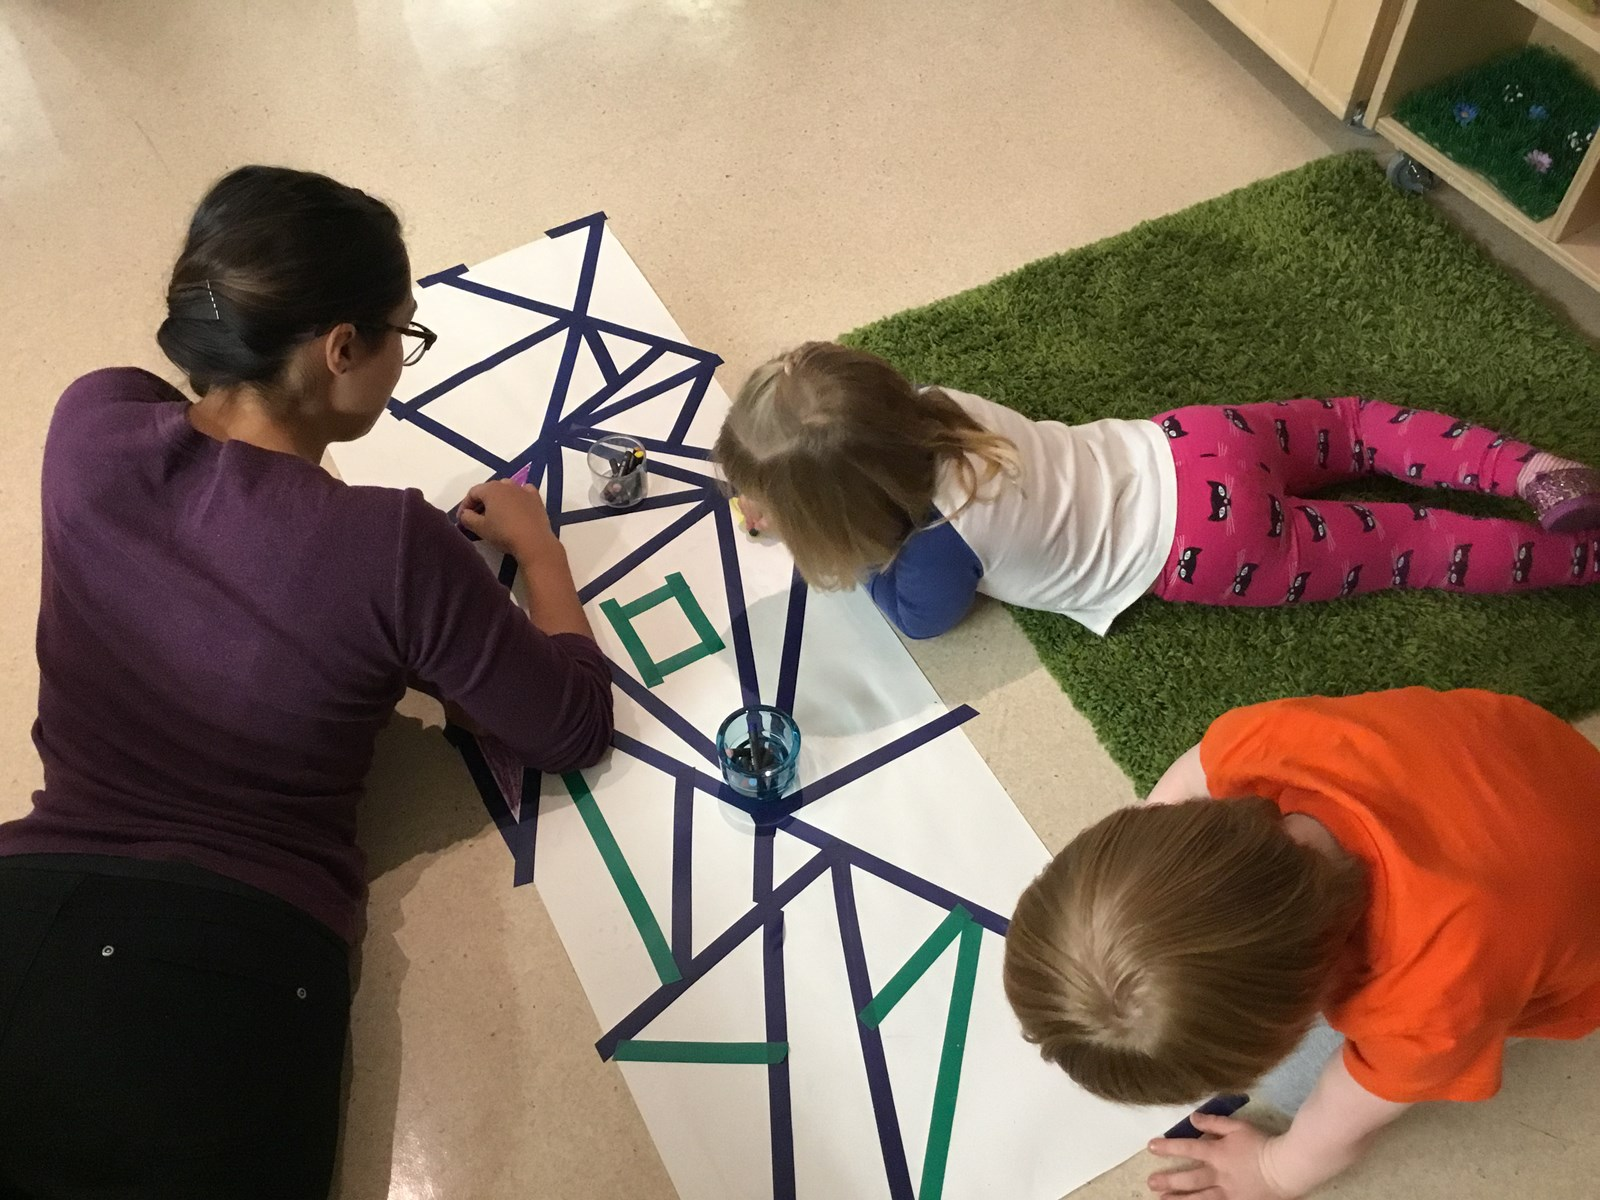 Image of children working on a collaborative art activity